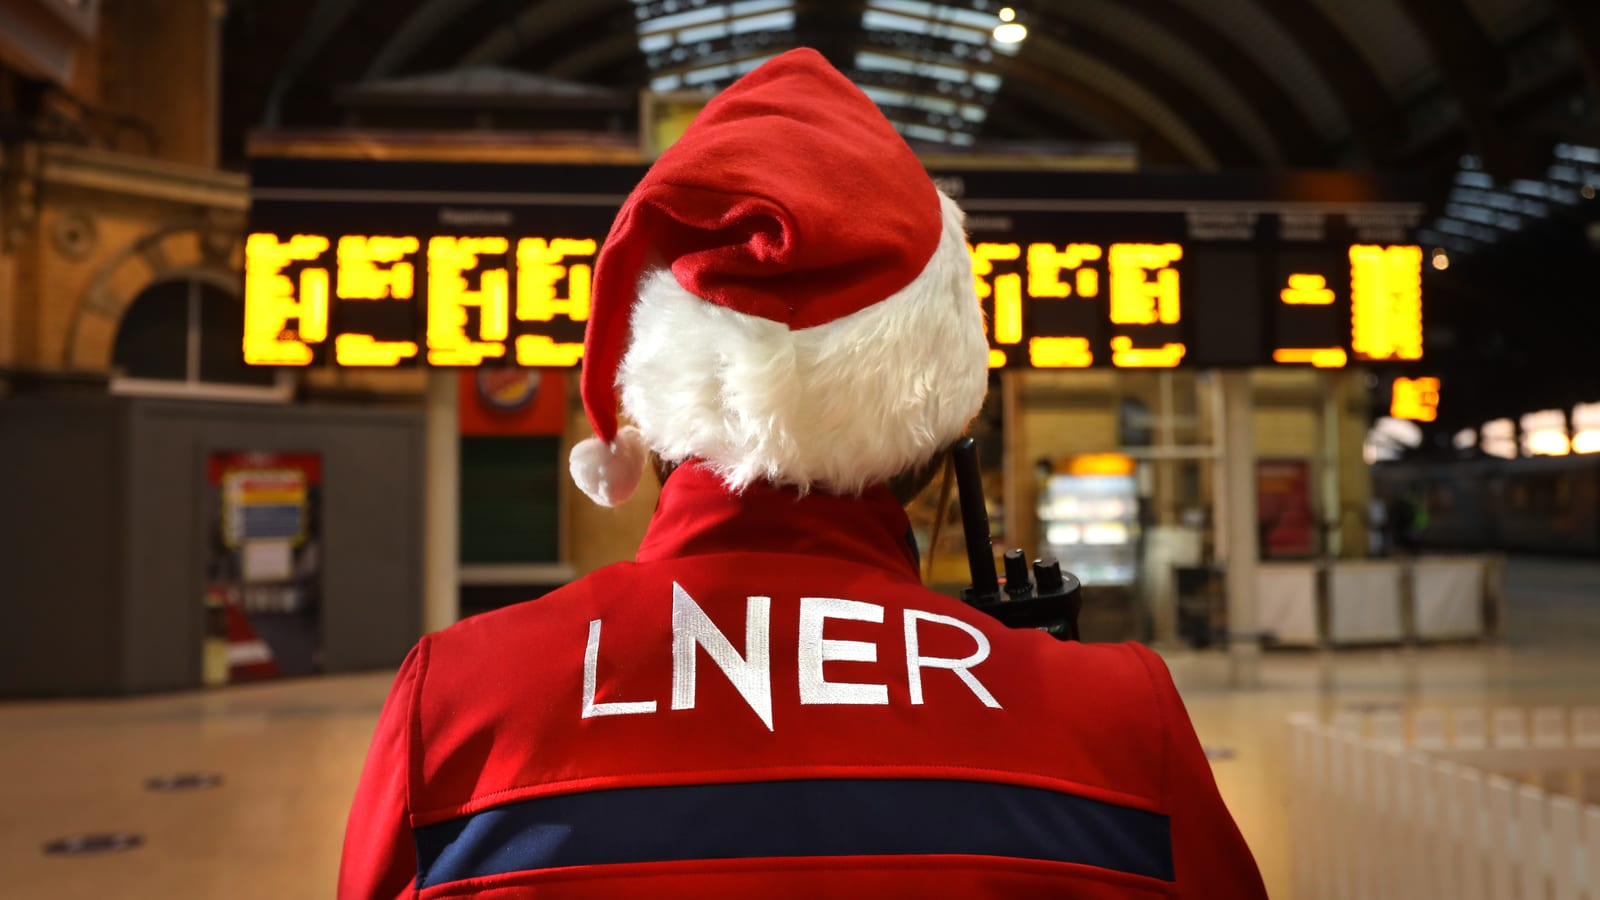 Recovery on track as Brits plan a 'double bash' this festive season